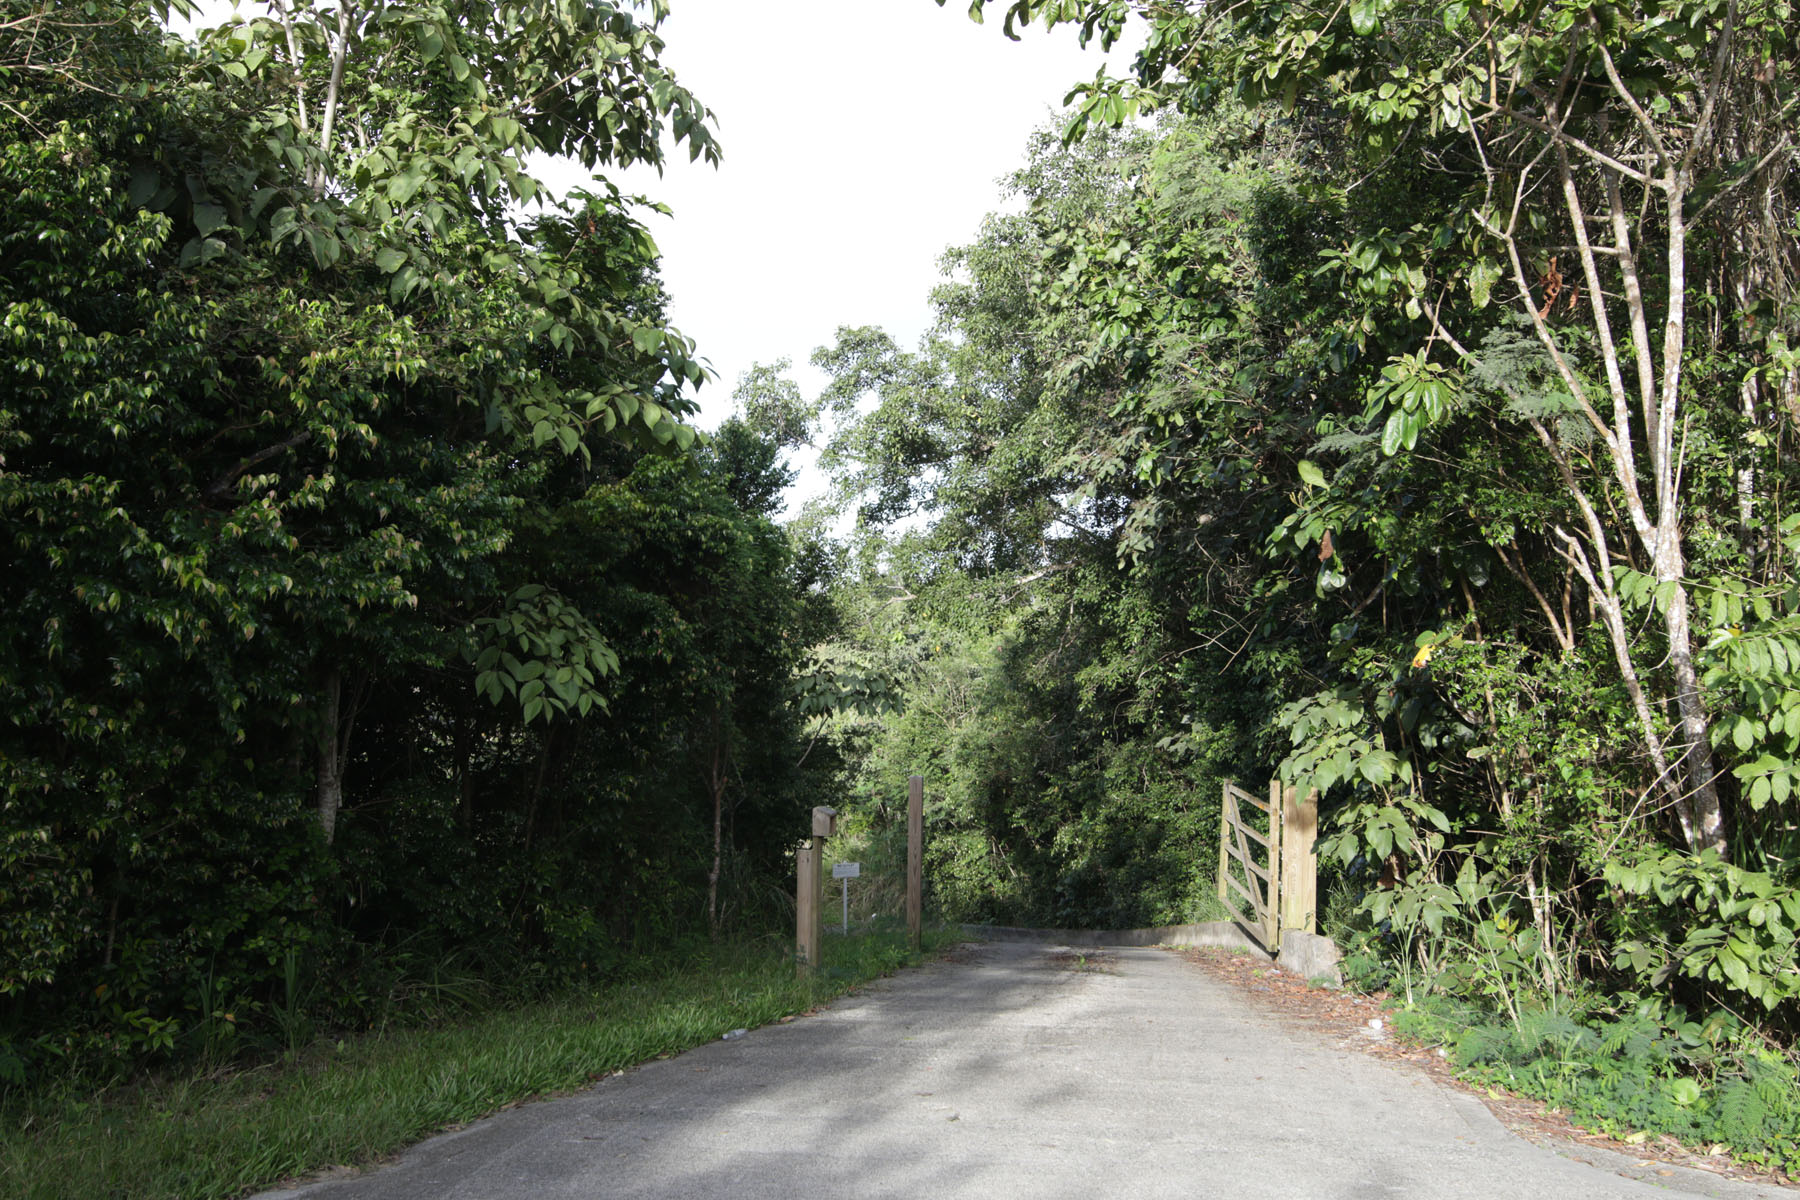 Land for Sale at Greenbanks Land Other Tortola, Tortola British Virgin Islands